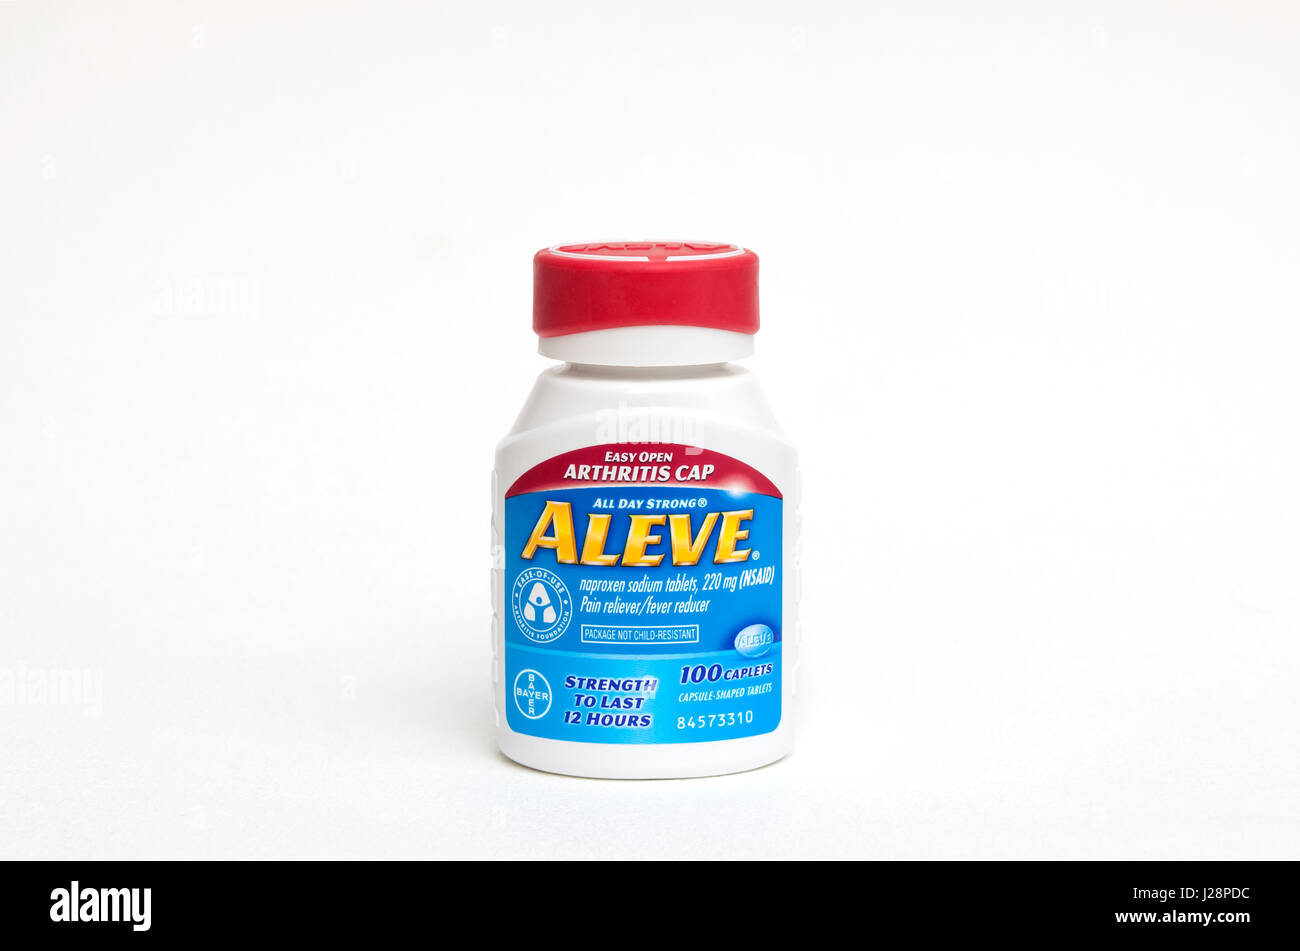 Aleve Naproxen Sodium Popular Name Brand Bottle With Easy Open